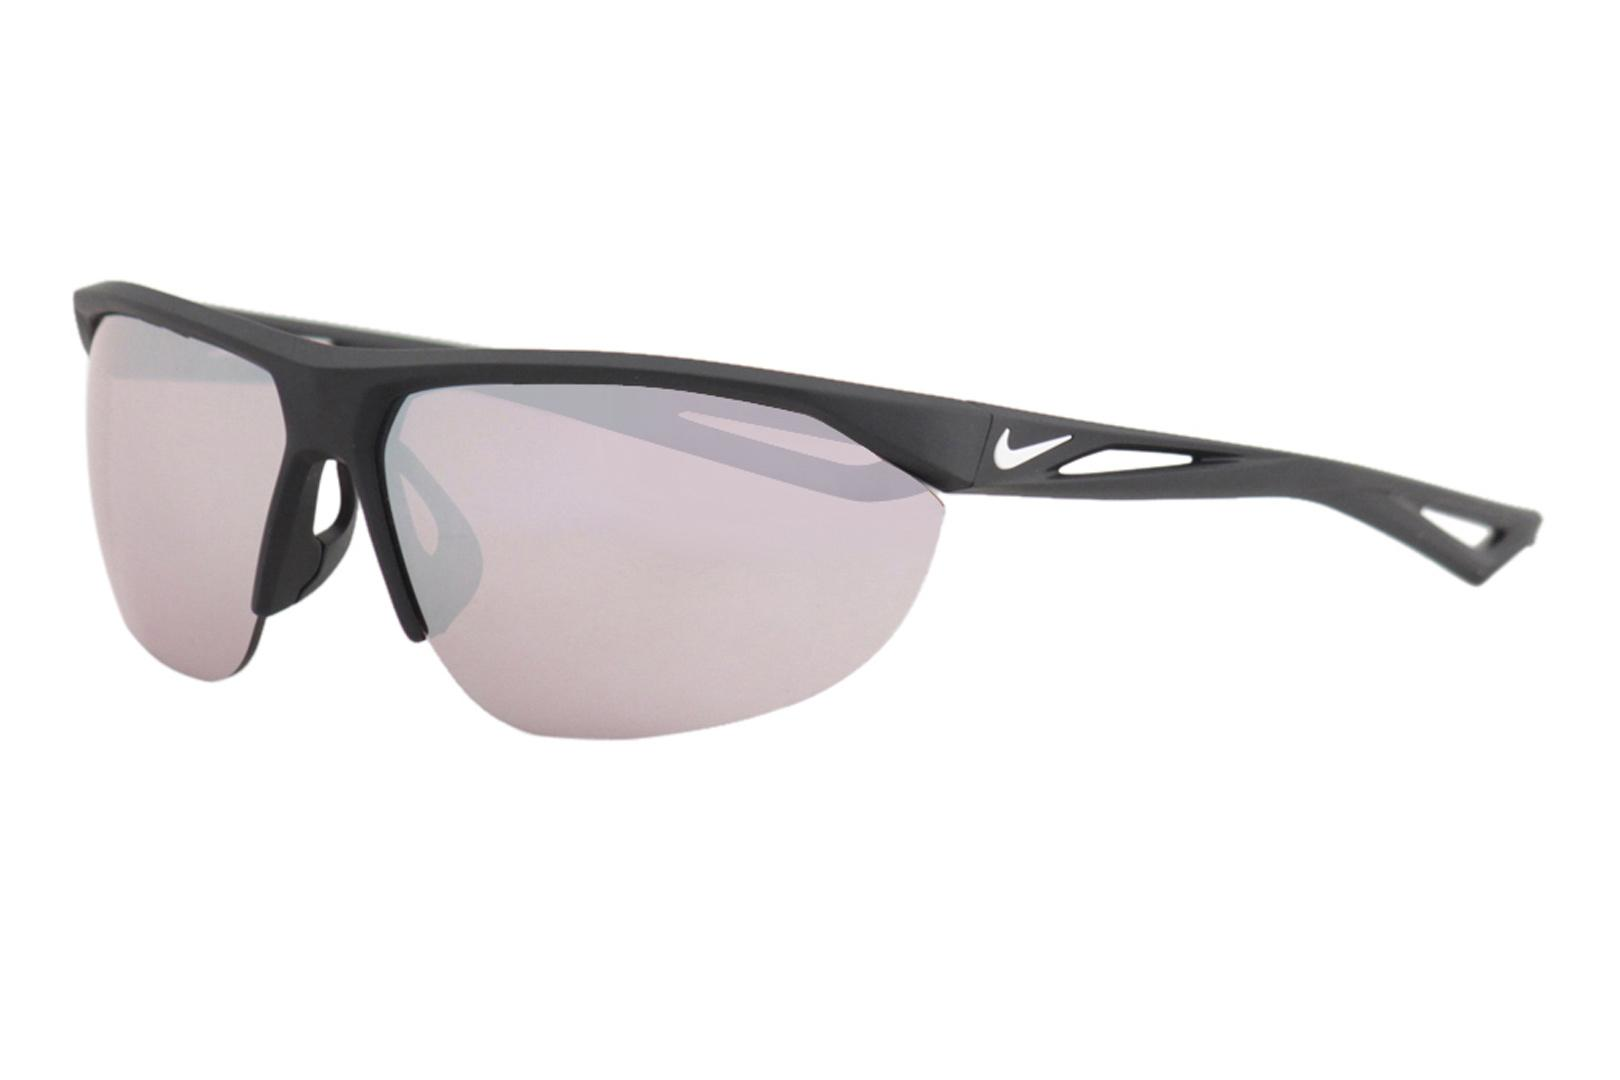 ab92bc38ad15 Nike Men's Tailwind Swift EV0948 EV/0948 Sport Wrap Sunglasses